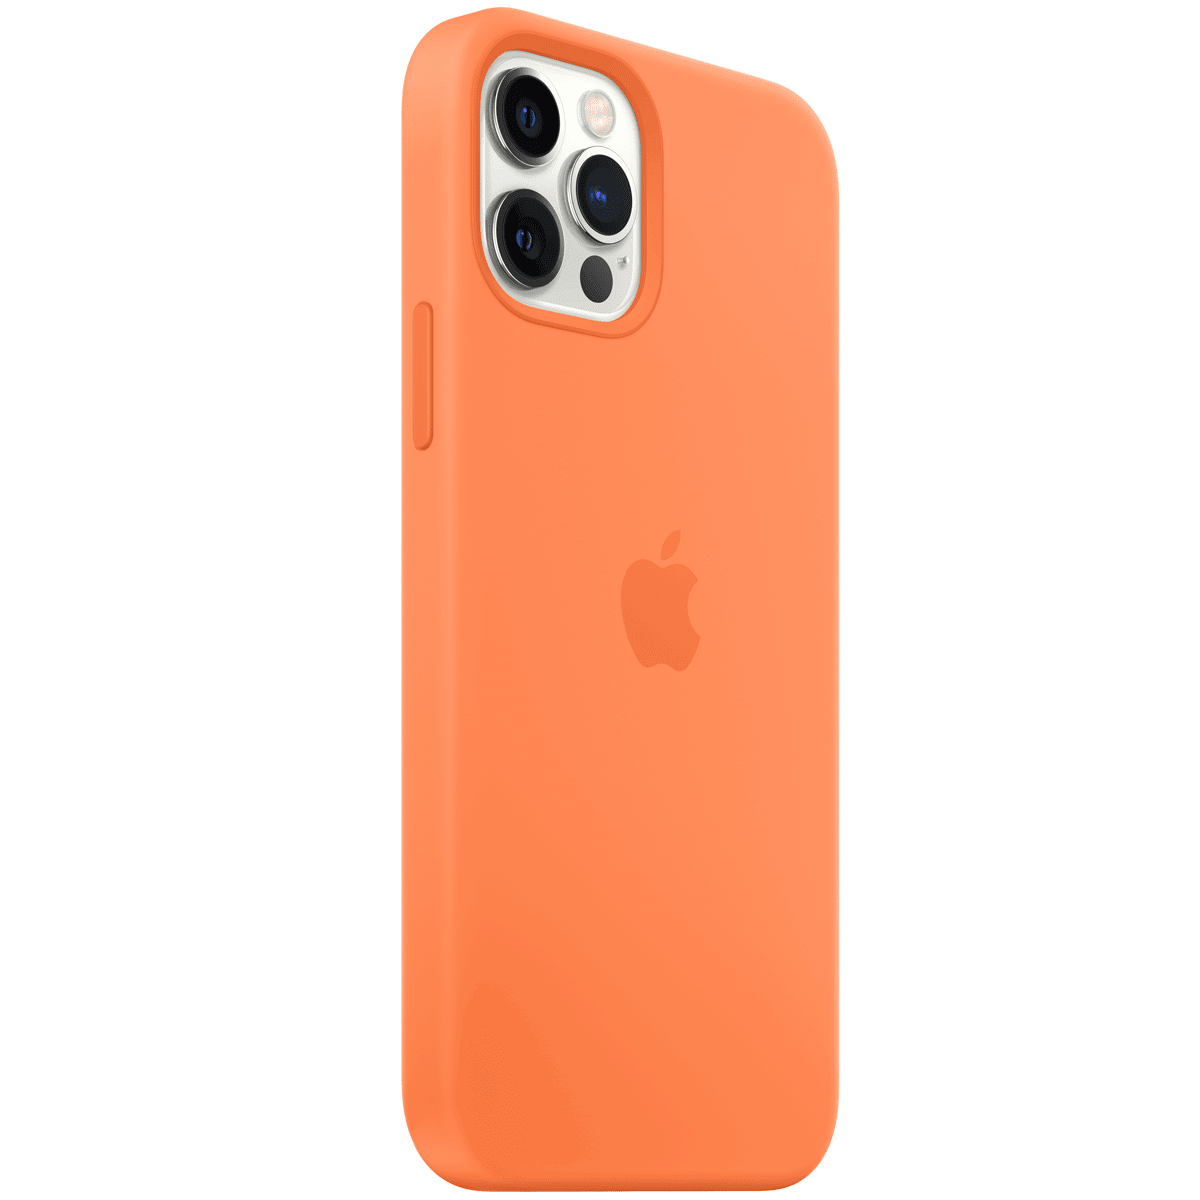 Apple Silicone Back Case For iPhone 12 Pro Max (Magsafe Charging Accessibility, MHL83ZM/A, Kumquat)_2